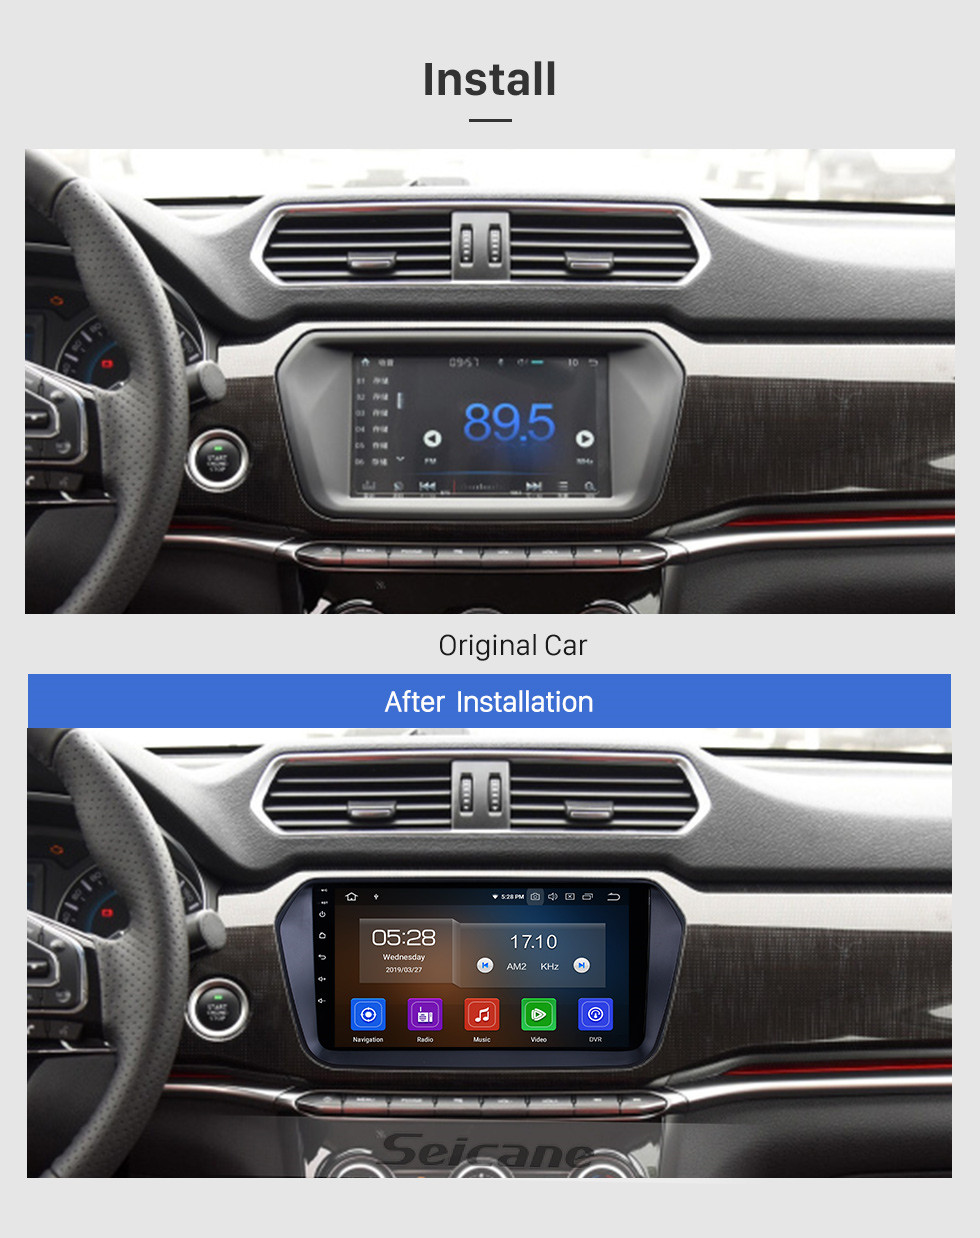 Seicane OEM 9 inch Android 10.0 for 2017 Great Wall Haval H2(Blue label) Radio Bluetooth HD Touchscreen GPS Navigation System Carplay support DVR